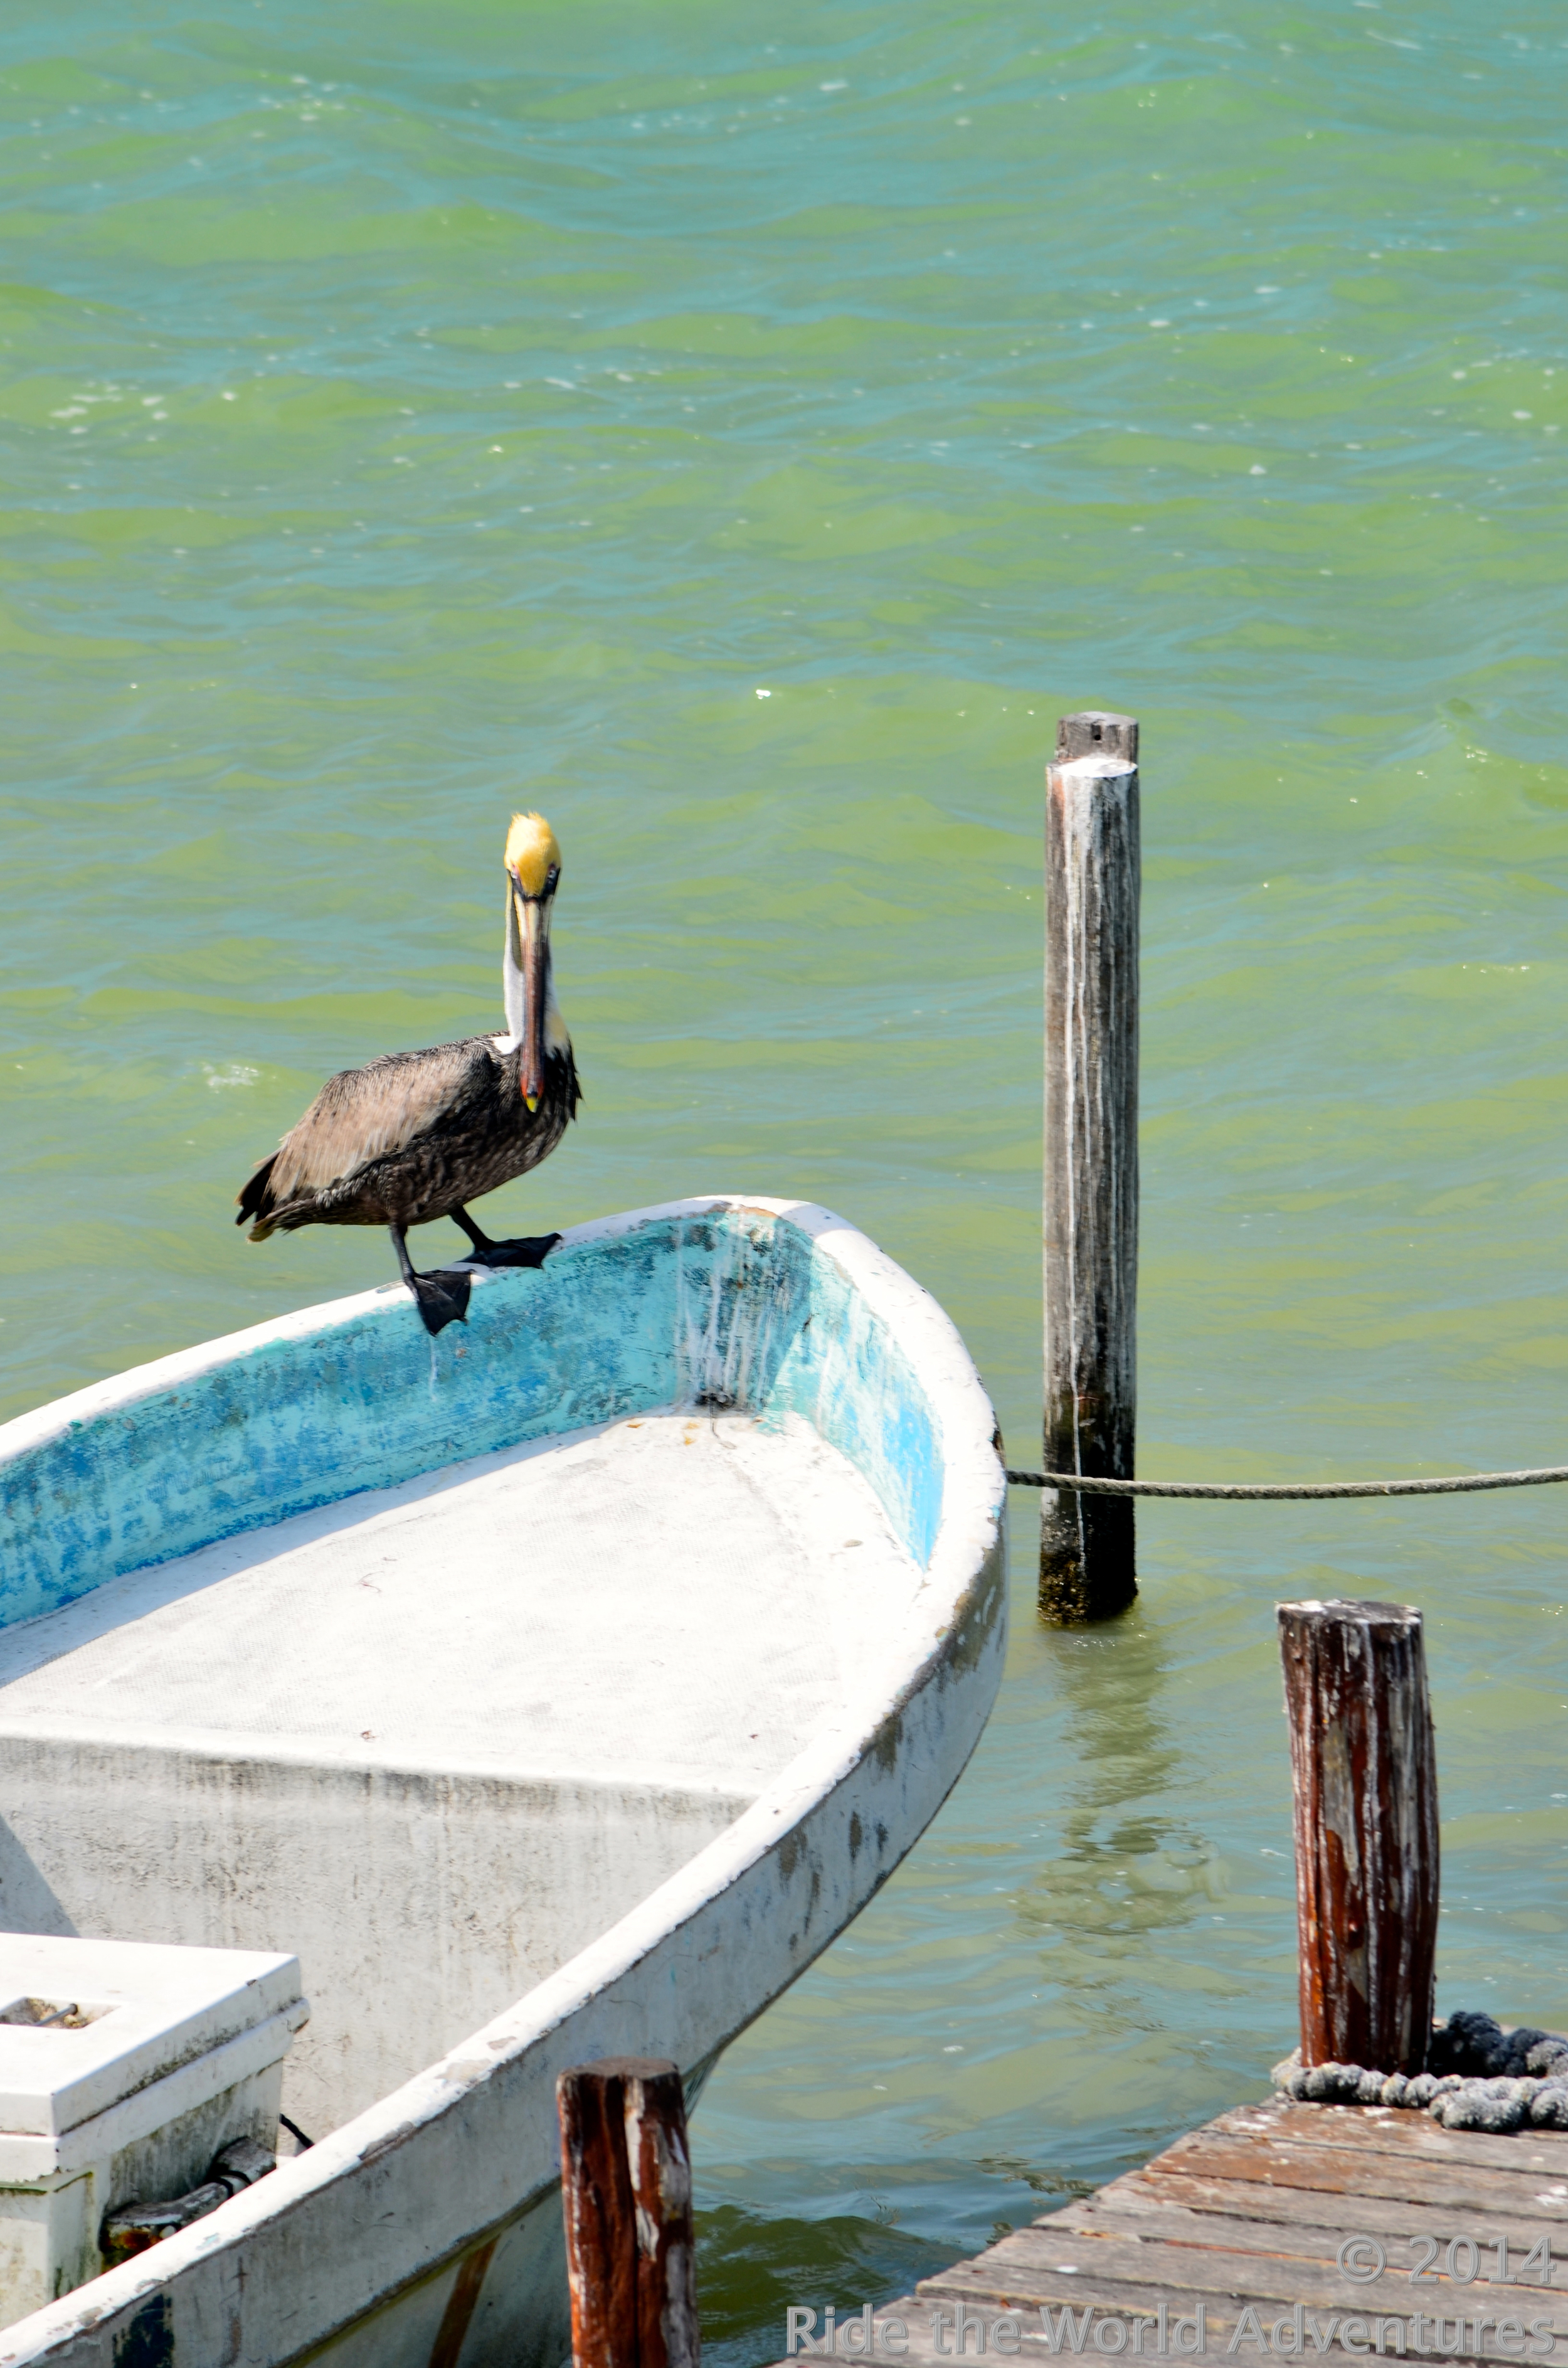 Love the pelicans and the paint!